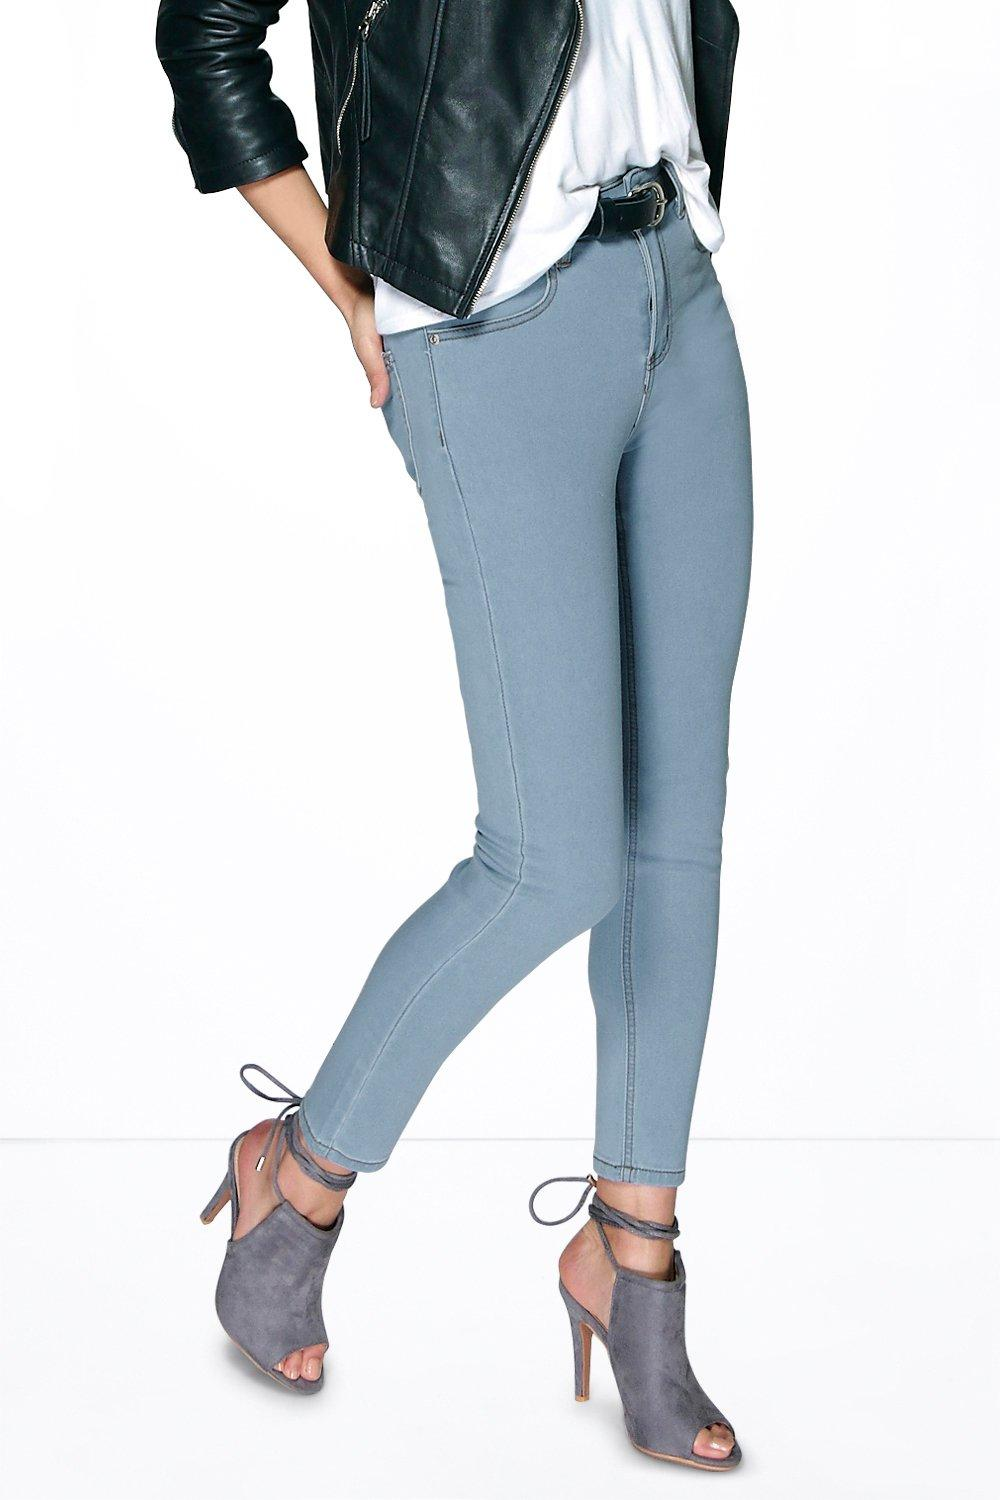 Jessie 5-Pkt High Rise Ankle Skinny Jeans